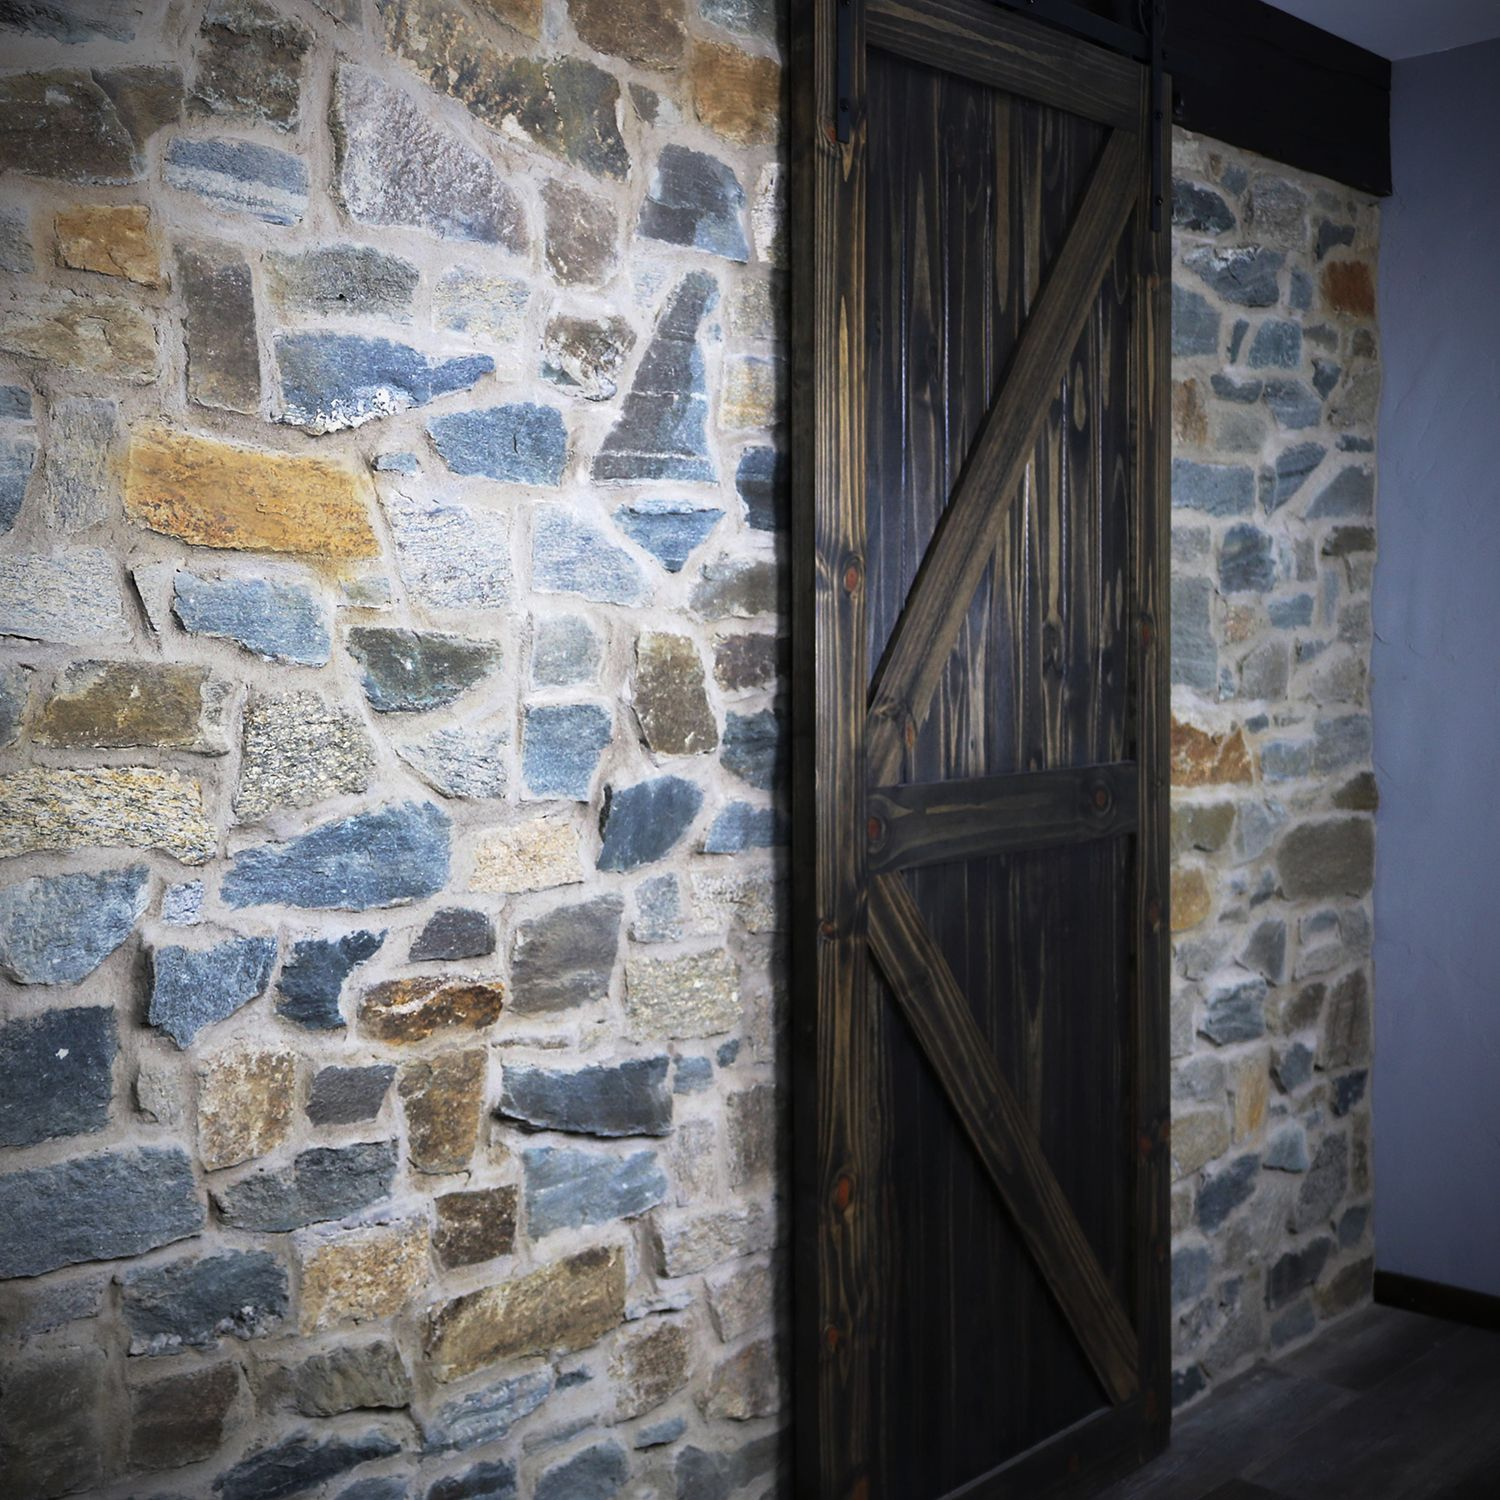 This Interior Stone Wall Is A Gorgeous E G Of An Interior Stone Veneer Idea Using Spalted Oak Siena Fieldled With Images Exterior Stone Stone Walls Interior Stone Masonry